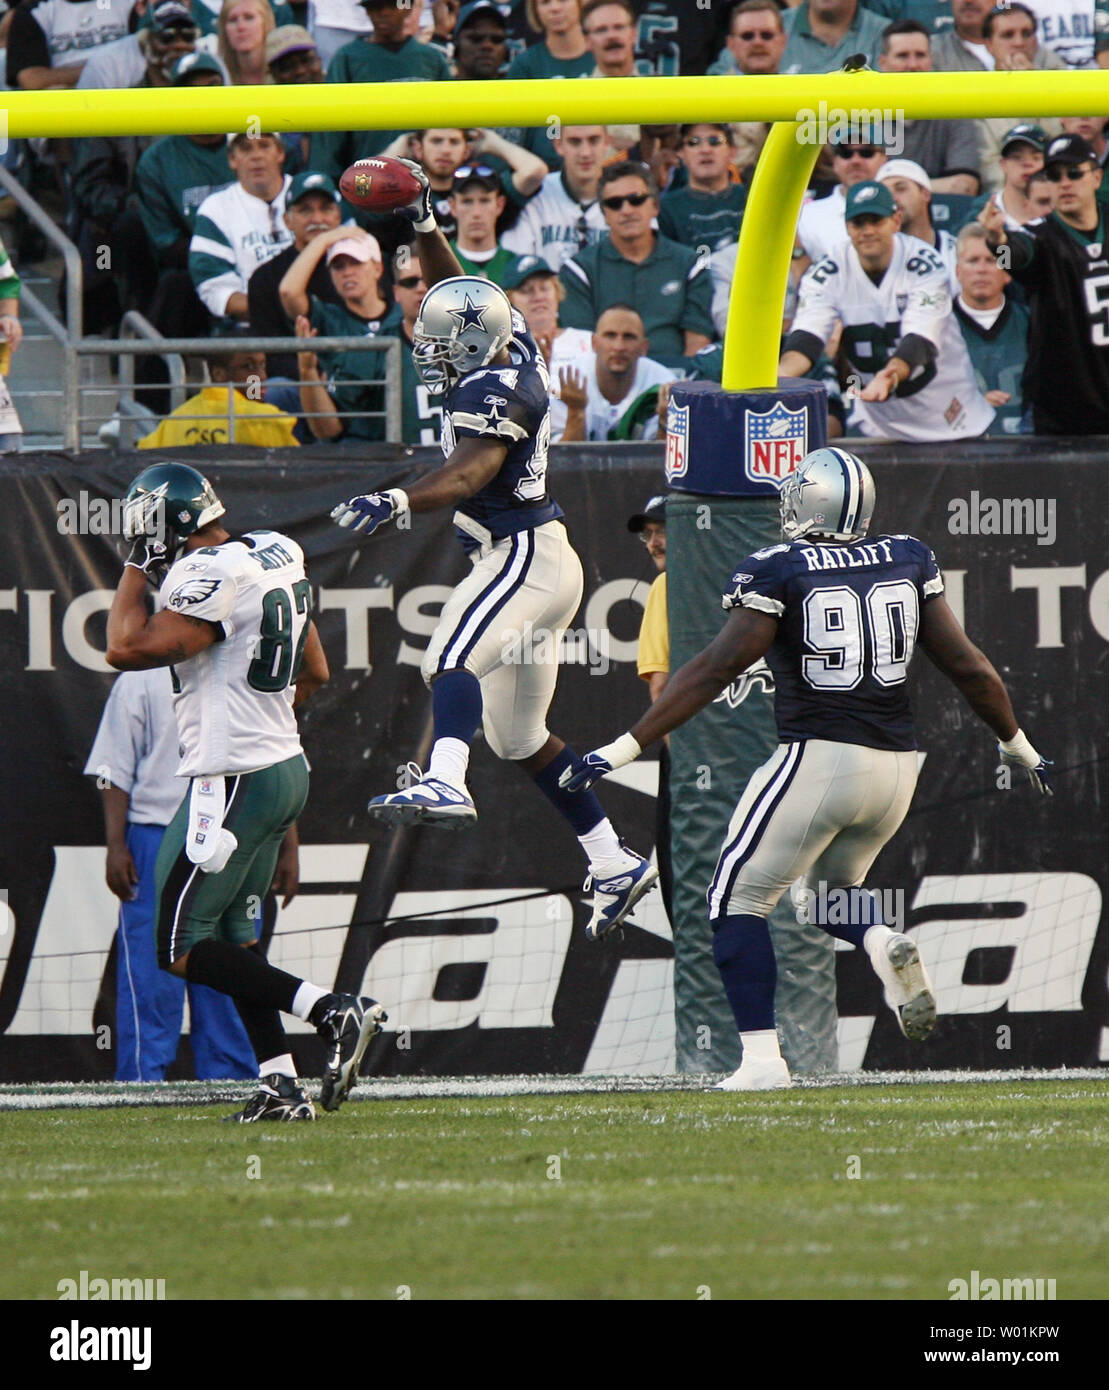 Dallas linebacker DeMarcus Ware goes high in the end zone to score for the Cowboys after recovering a Philadelphia fumble and running it for 69-yards and a touchdown during second quarter Dallas Cowboys-Philadelphia Eagles NFL football action  at Philadelphia's Lincoln Field October 8, 2006. Covering him is Dallas Jay Ratliff (#90) and giving up the chase is Eagles L.J.Smith (#82).         (UPI Photo/John Anderson) - Stock Image